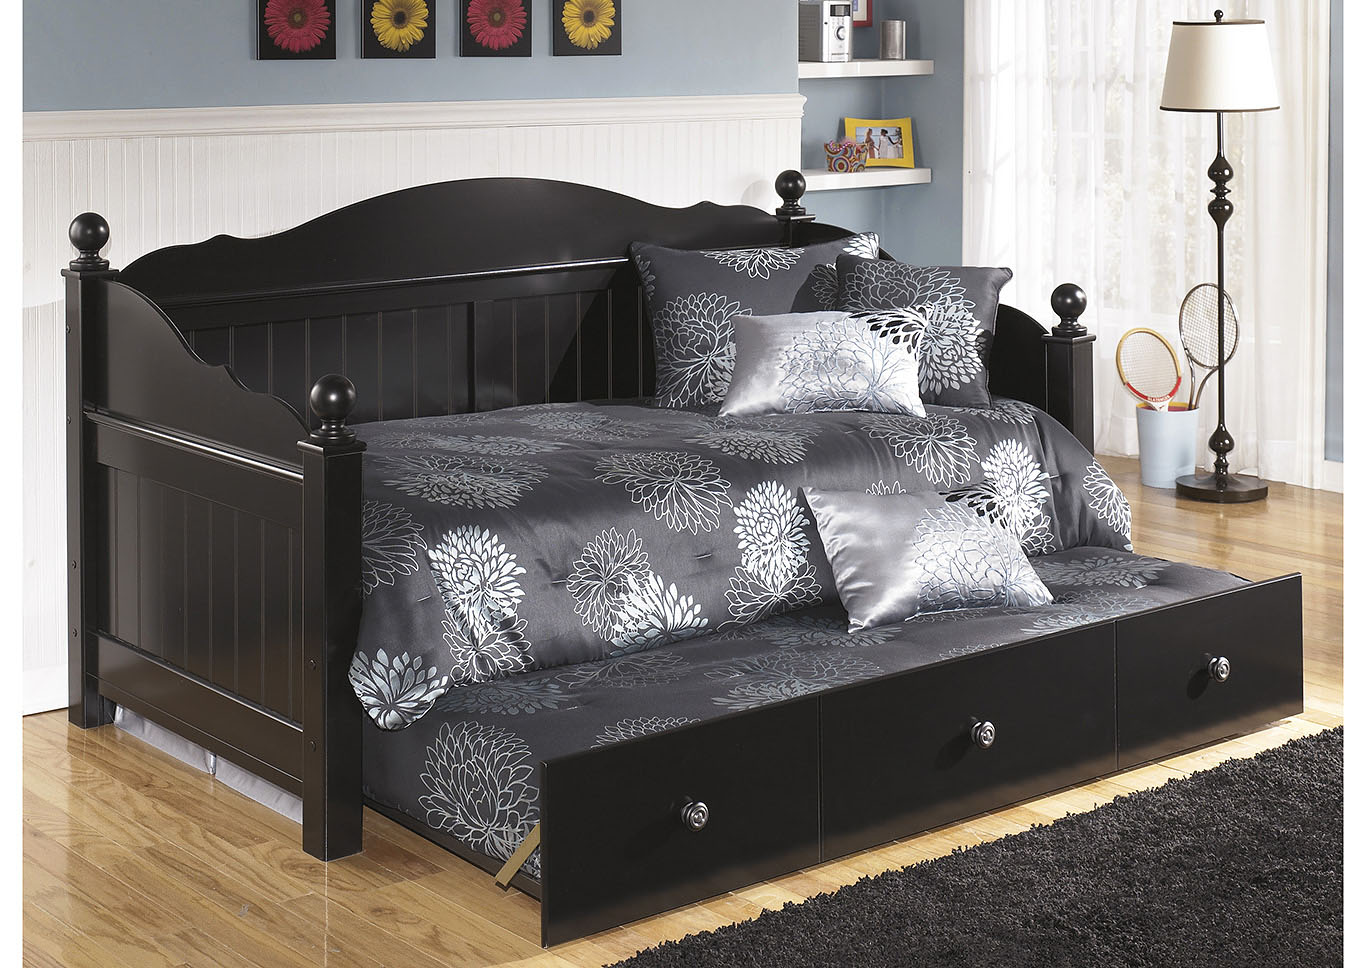 Jaidyn Daybed,Signature Design By Ashley